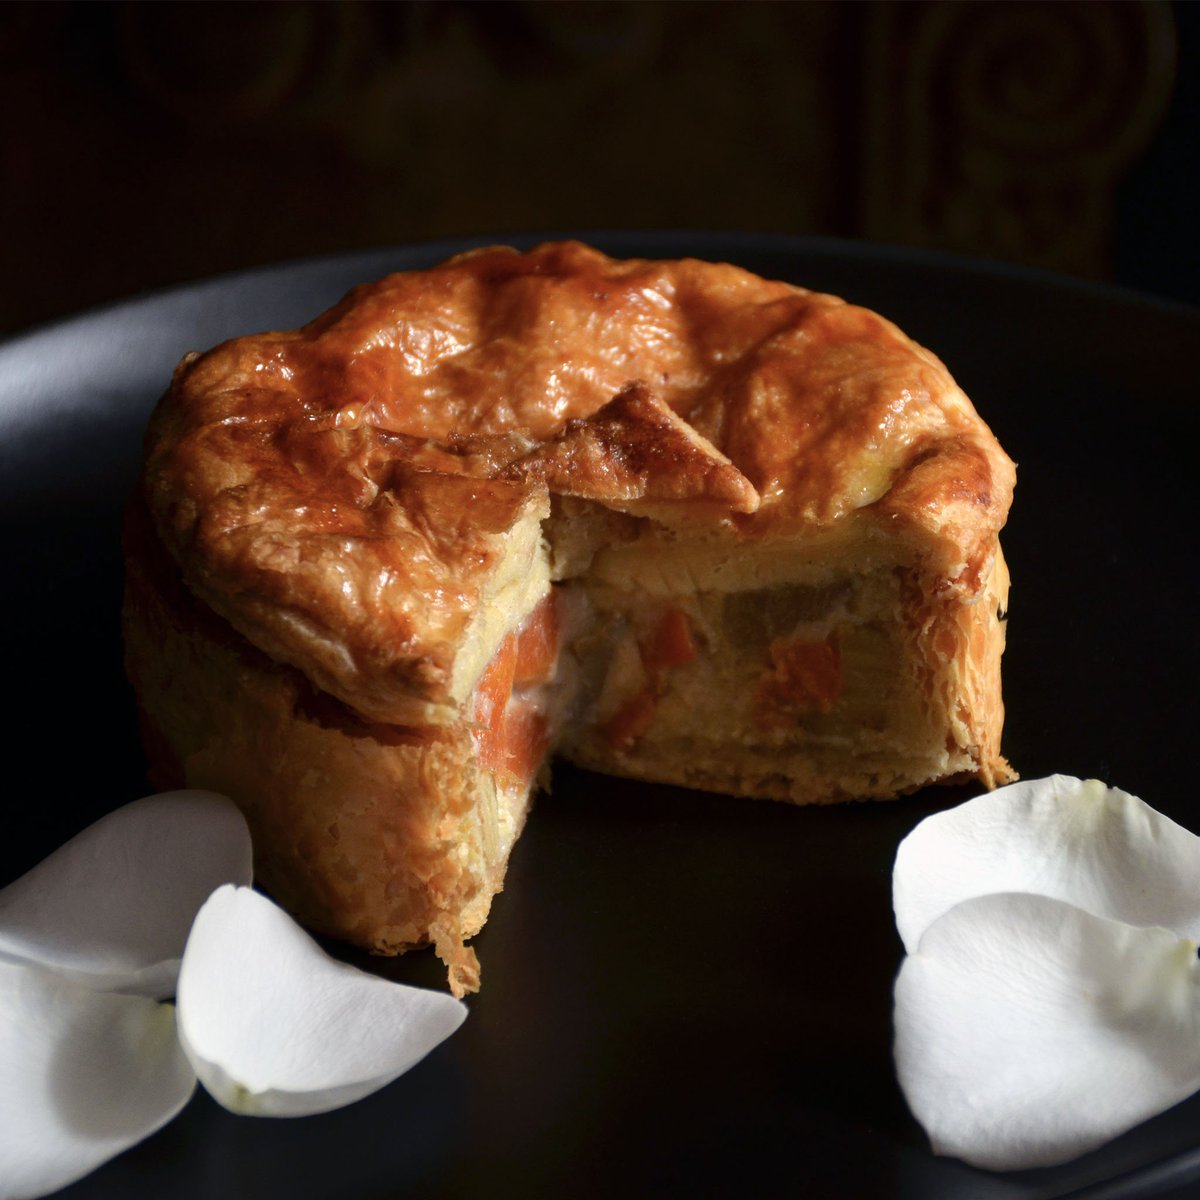 """Pressed for time? Try our delicious Home Baked Pie - filled with a Creamy Root Vegetable Bake.  Enter the discount code """"HOT"""" at checkout and receive your order free, up to R70.  https://t.co/0iMVgHNNJi    #pastry #pie #rootvegpie #creamy #bestpieever #capetown #deliveryguy https://t.co/4kJxGZbHem"""